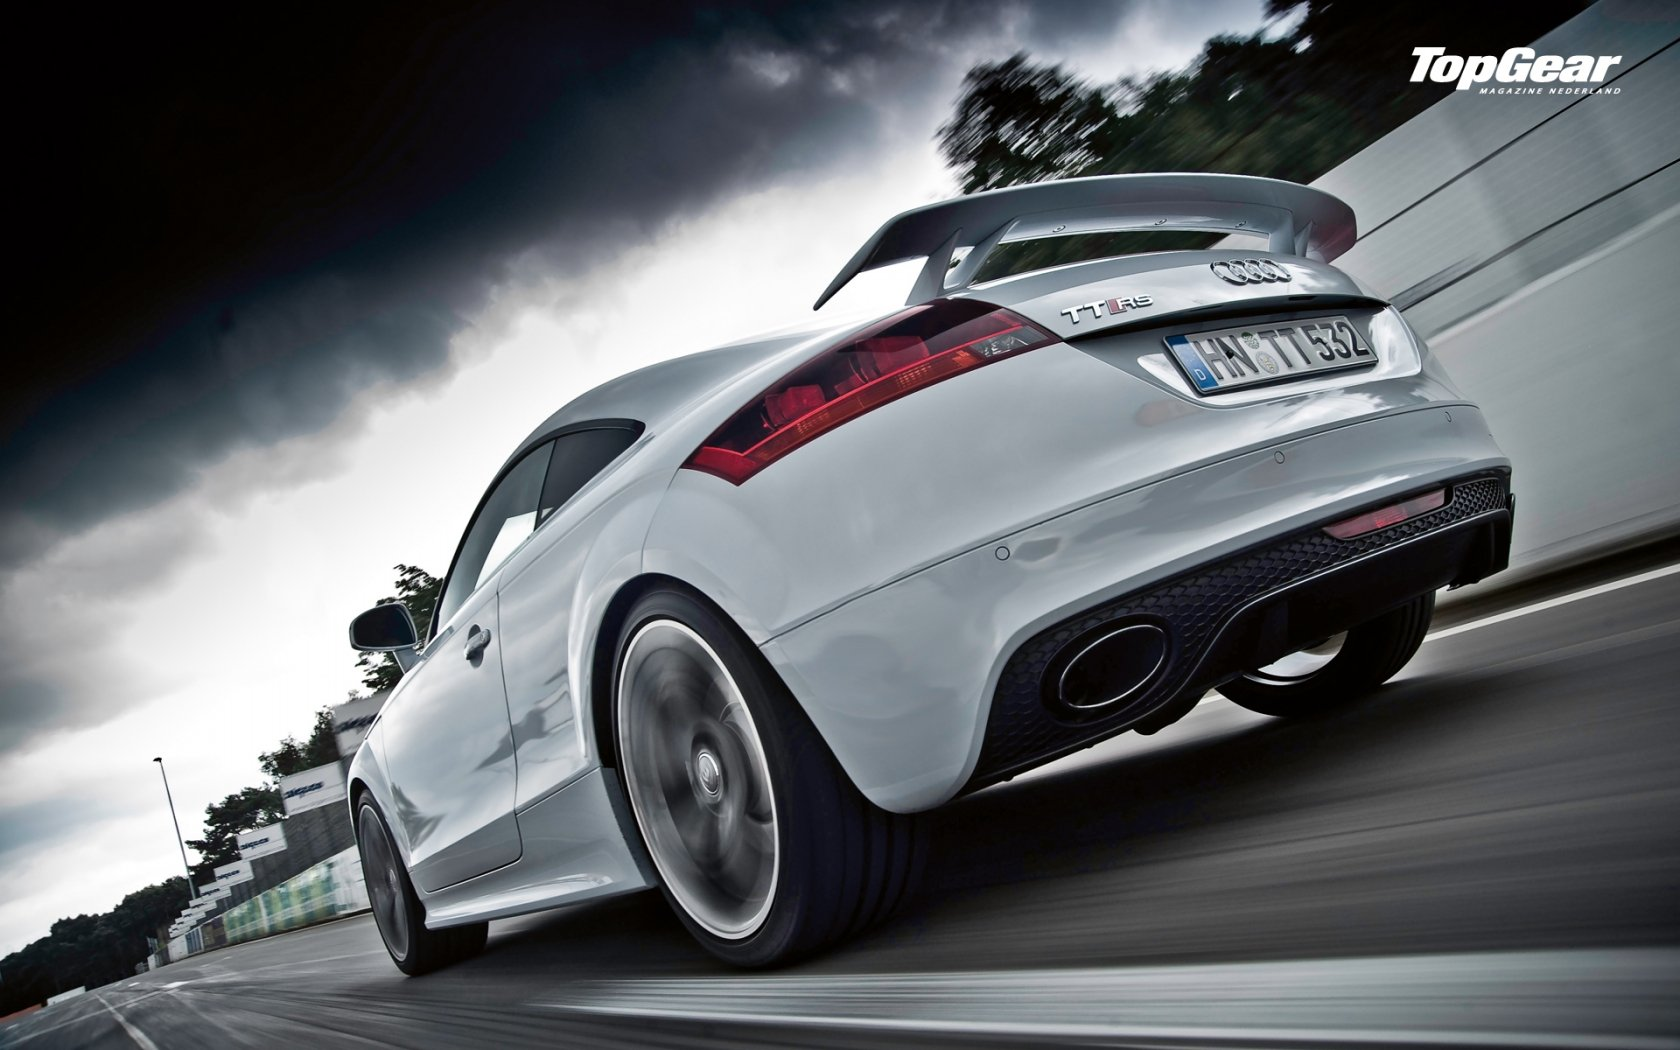 Audi TT RS Wallpaper - WallpaperSafari